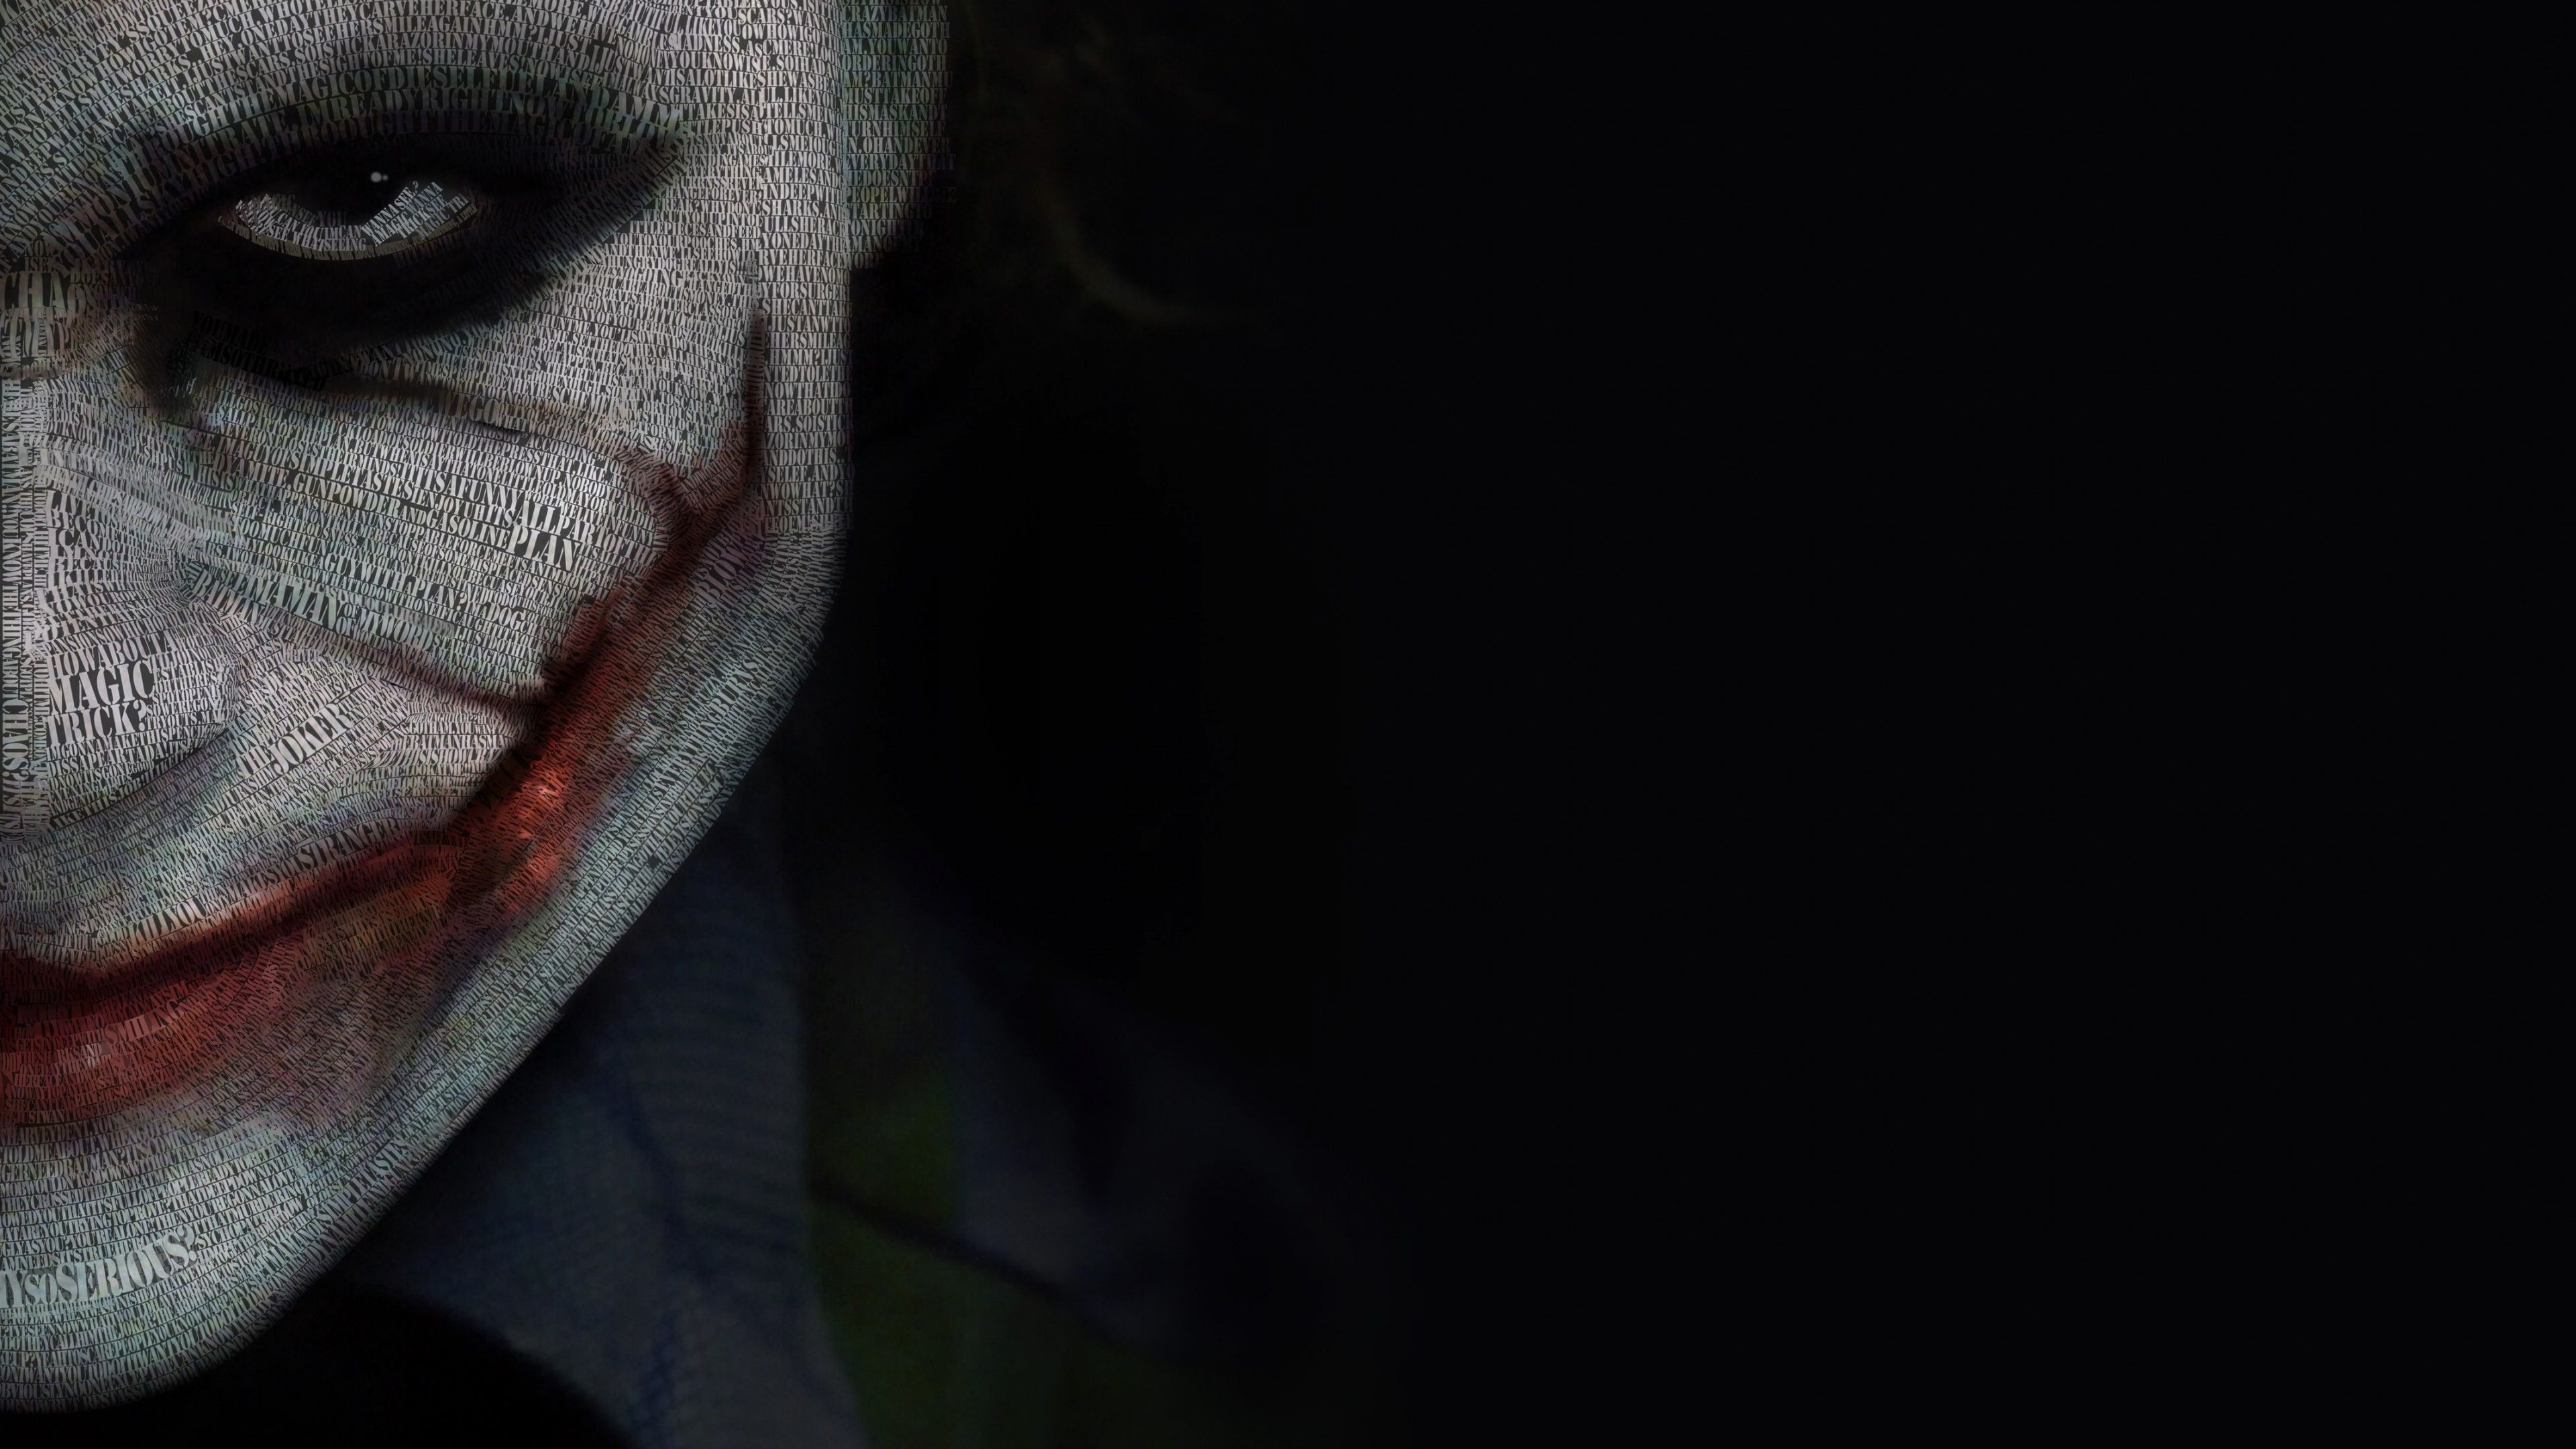 The Joker Typeface Portrait 3840 X 2160 Wallpaper Joker Pics 4k Wallpaper For Mobile Joker Hd Wallpaper